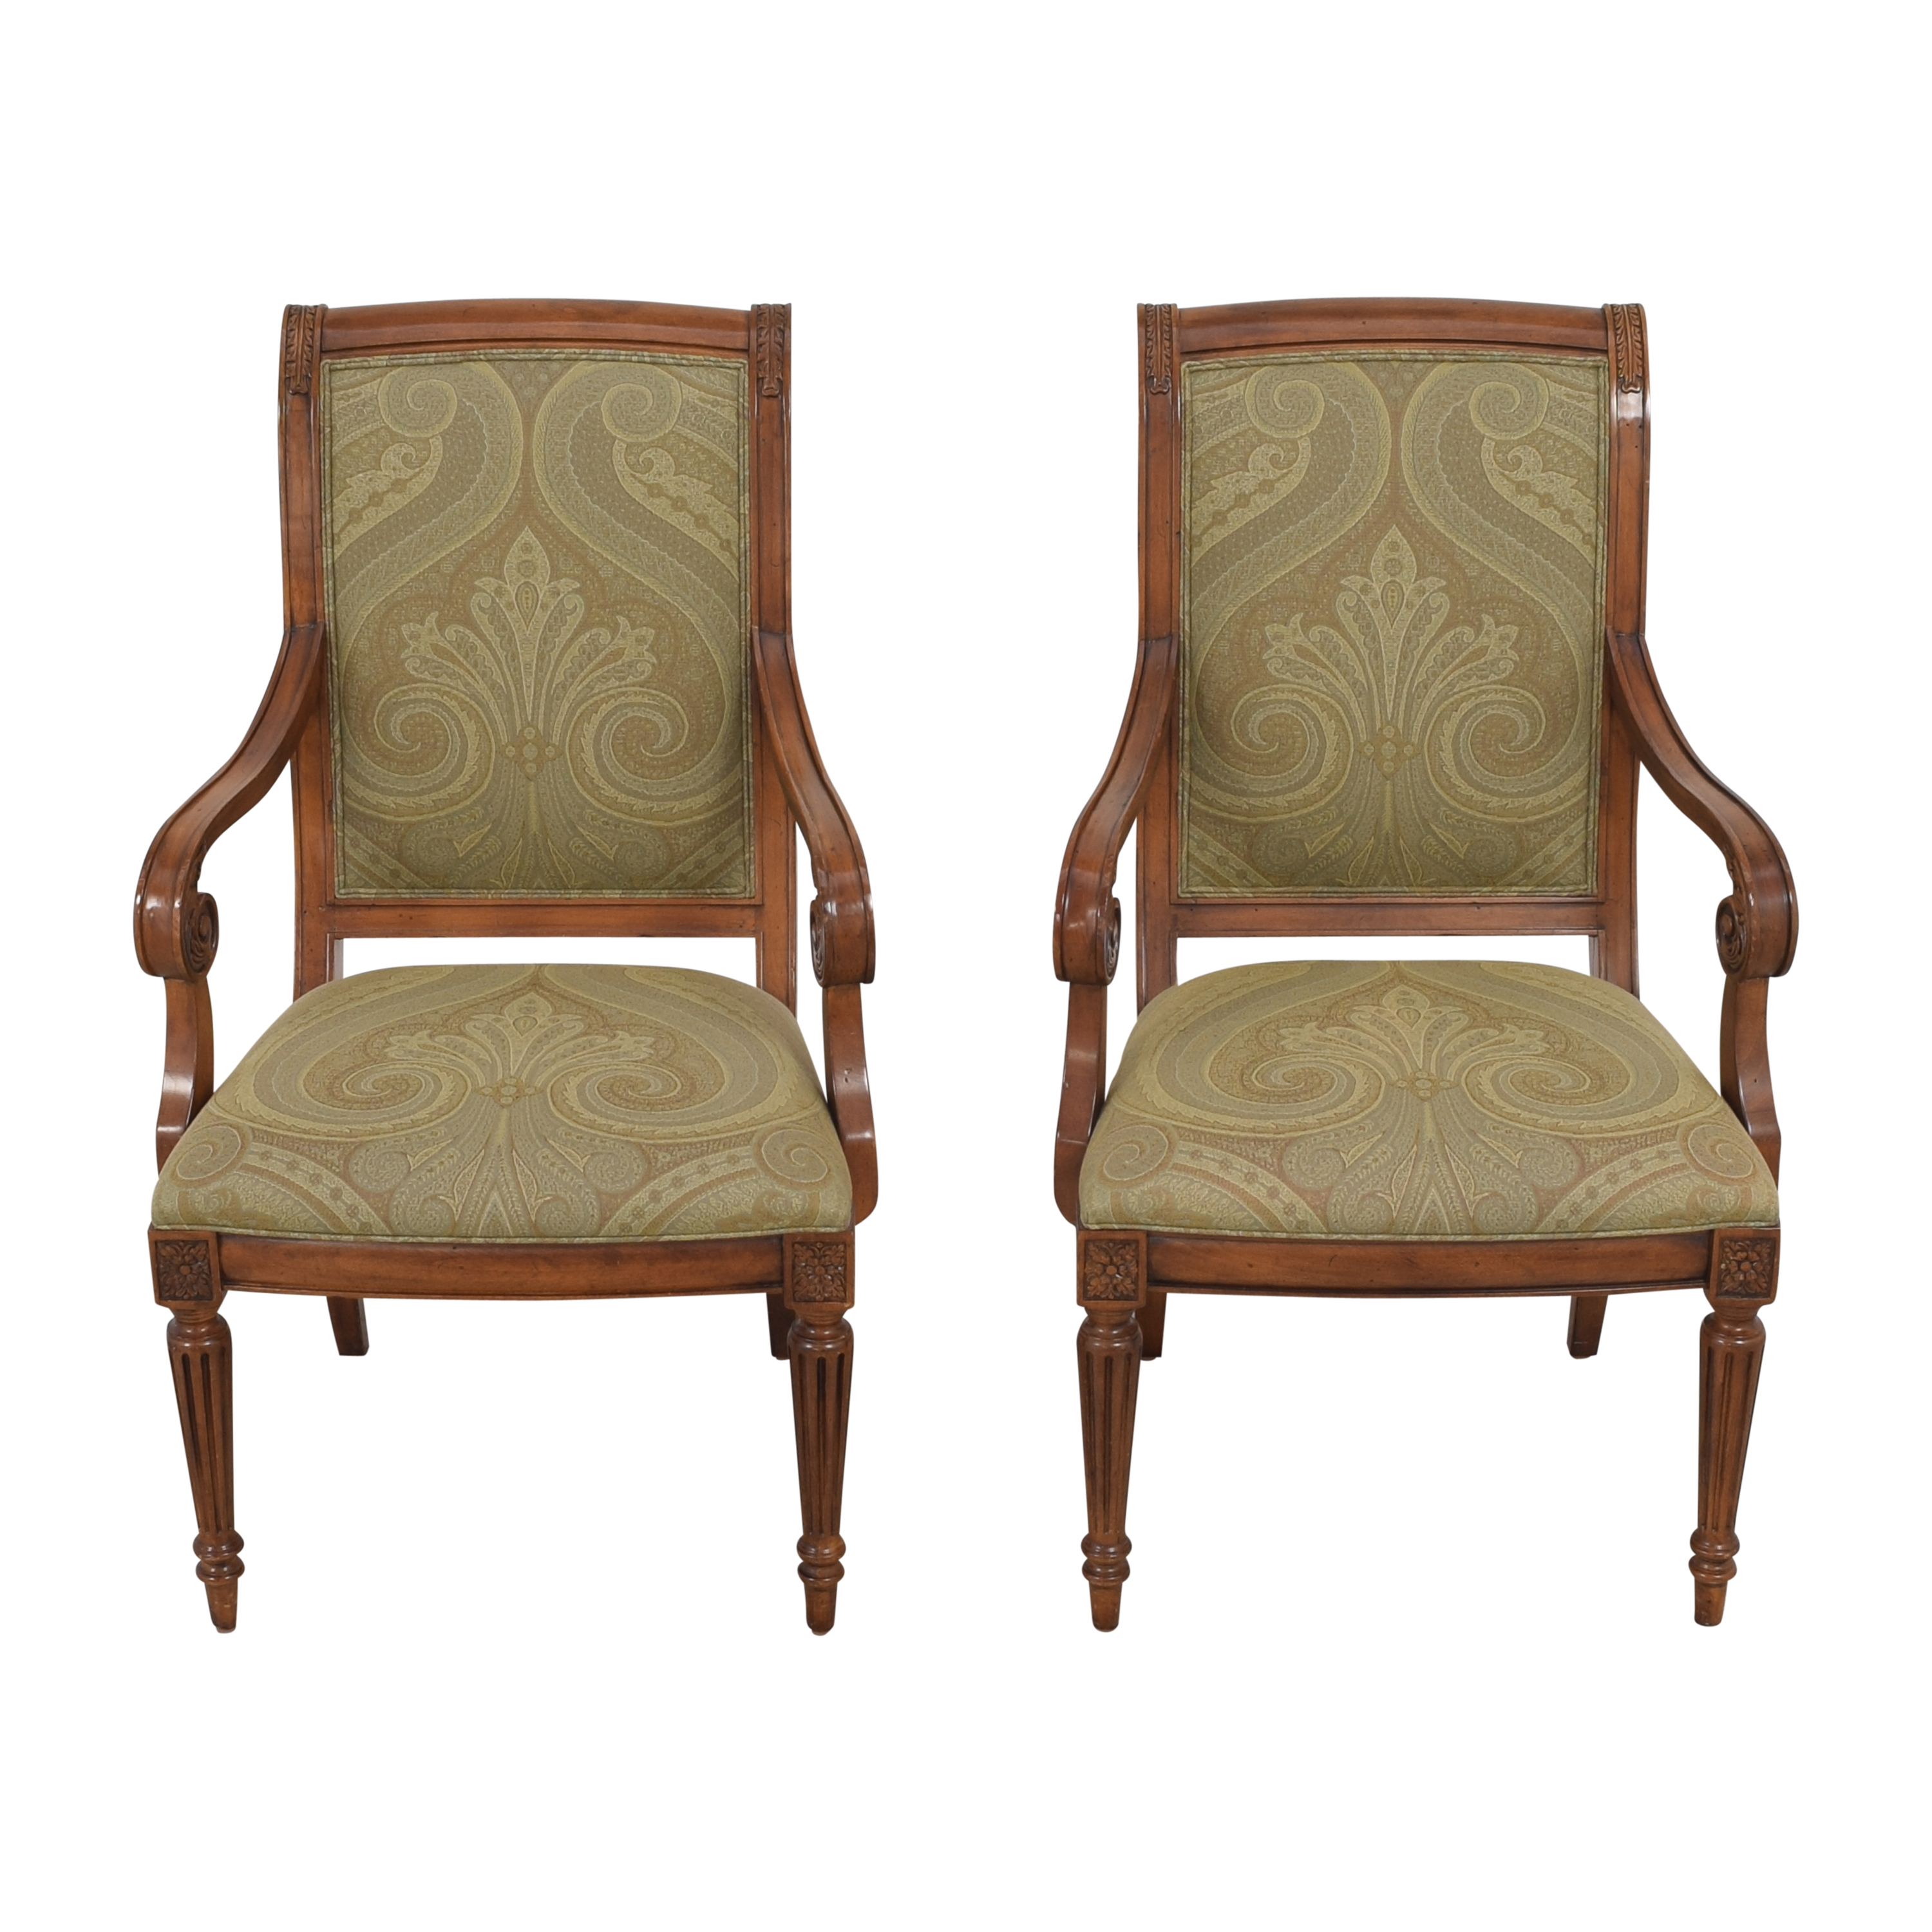 Ethan Allen Ethan Allen Townhouse Addison Dining Arm Chairs Chairs